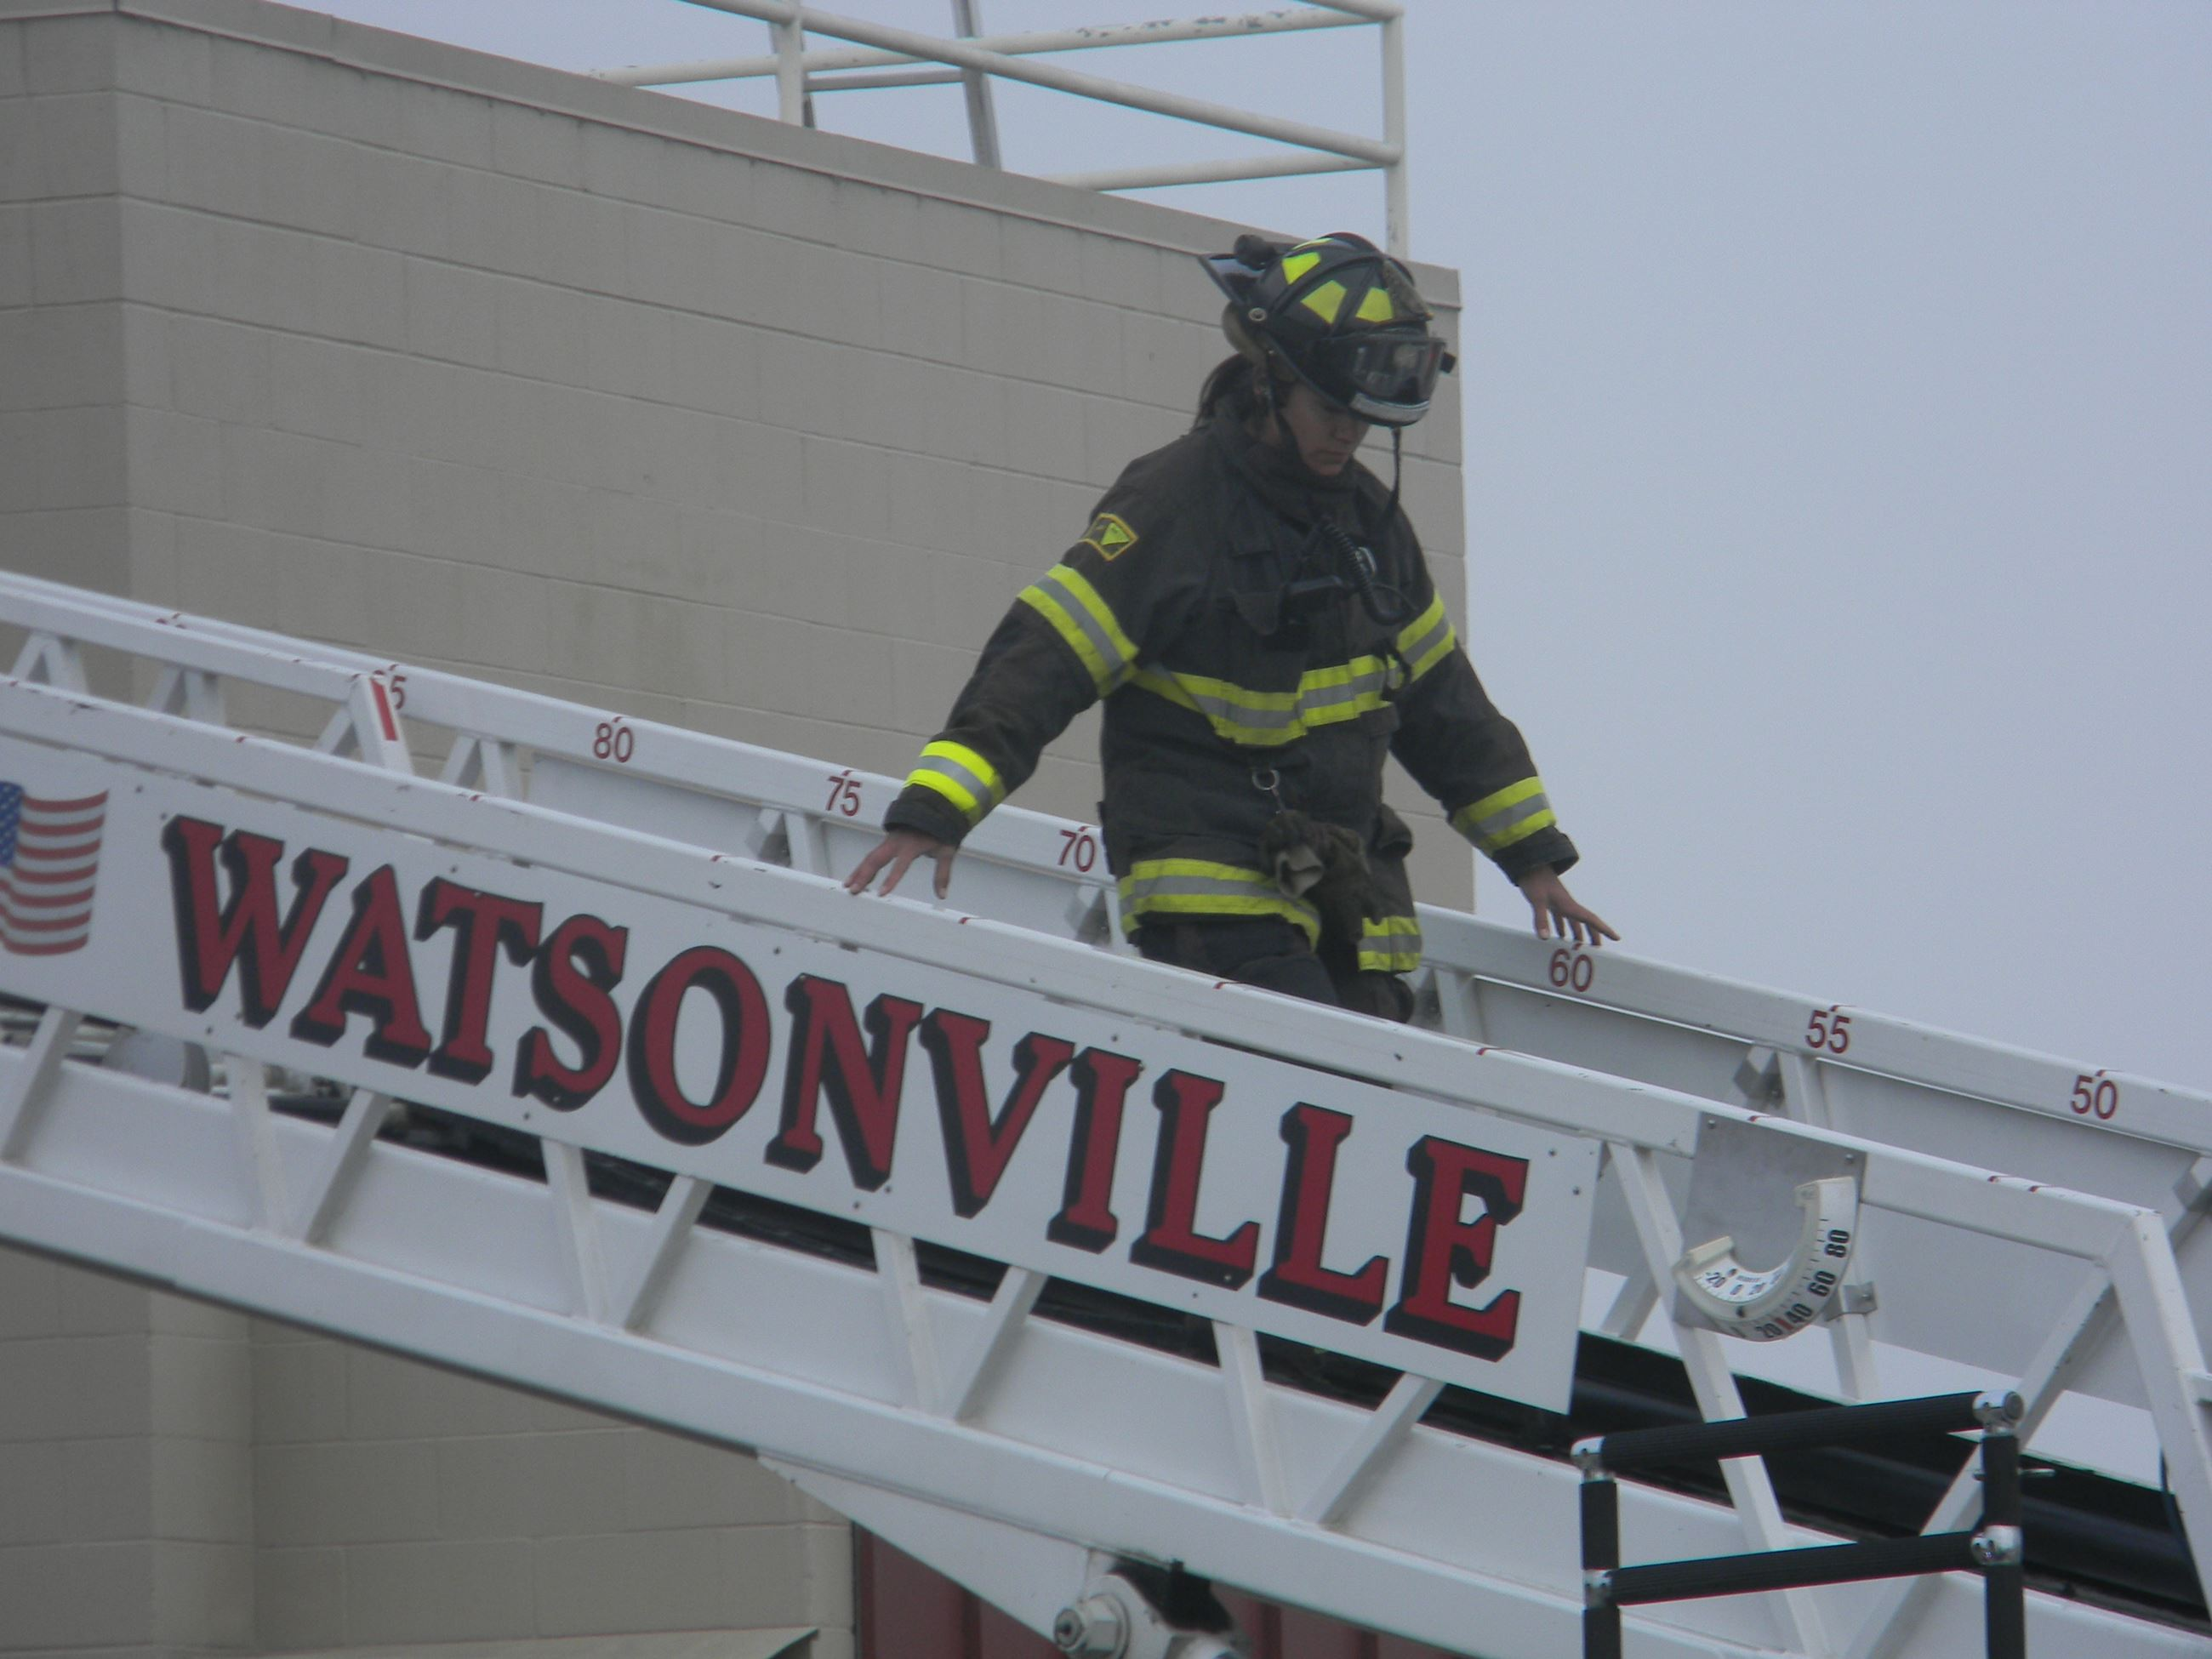 Firefighter walking down a ladder